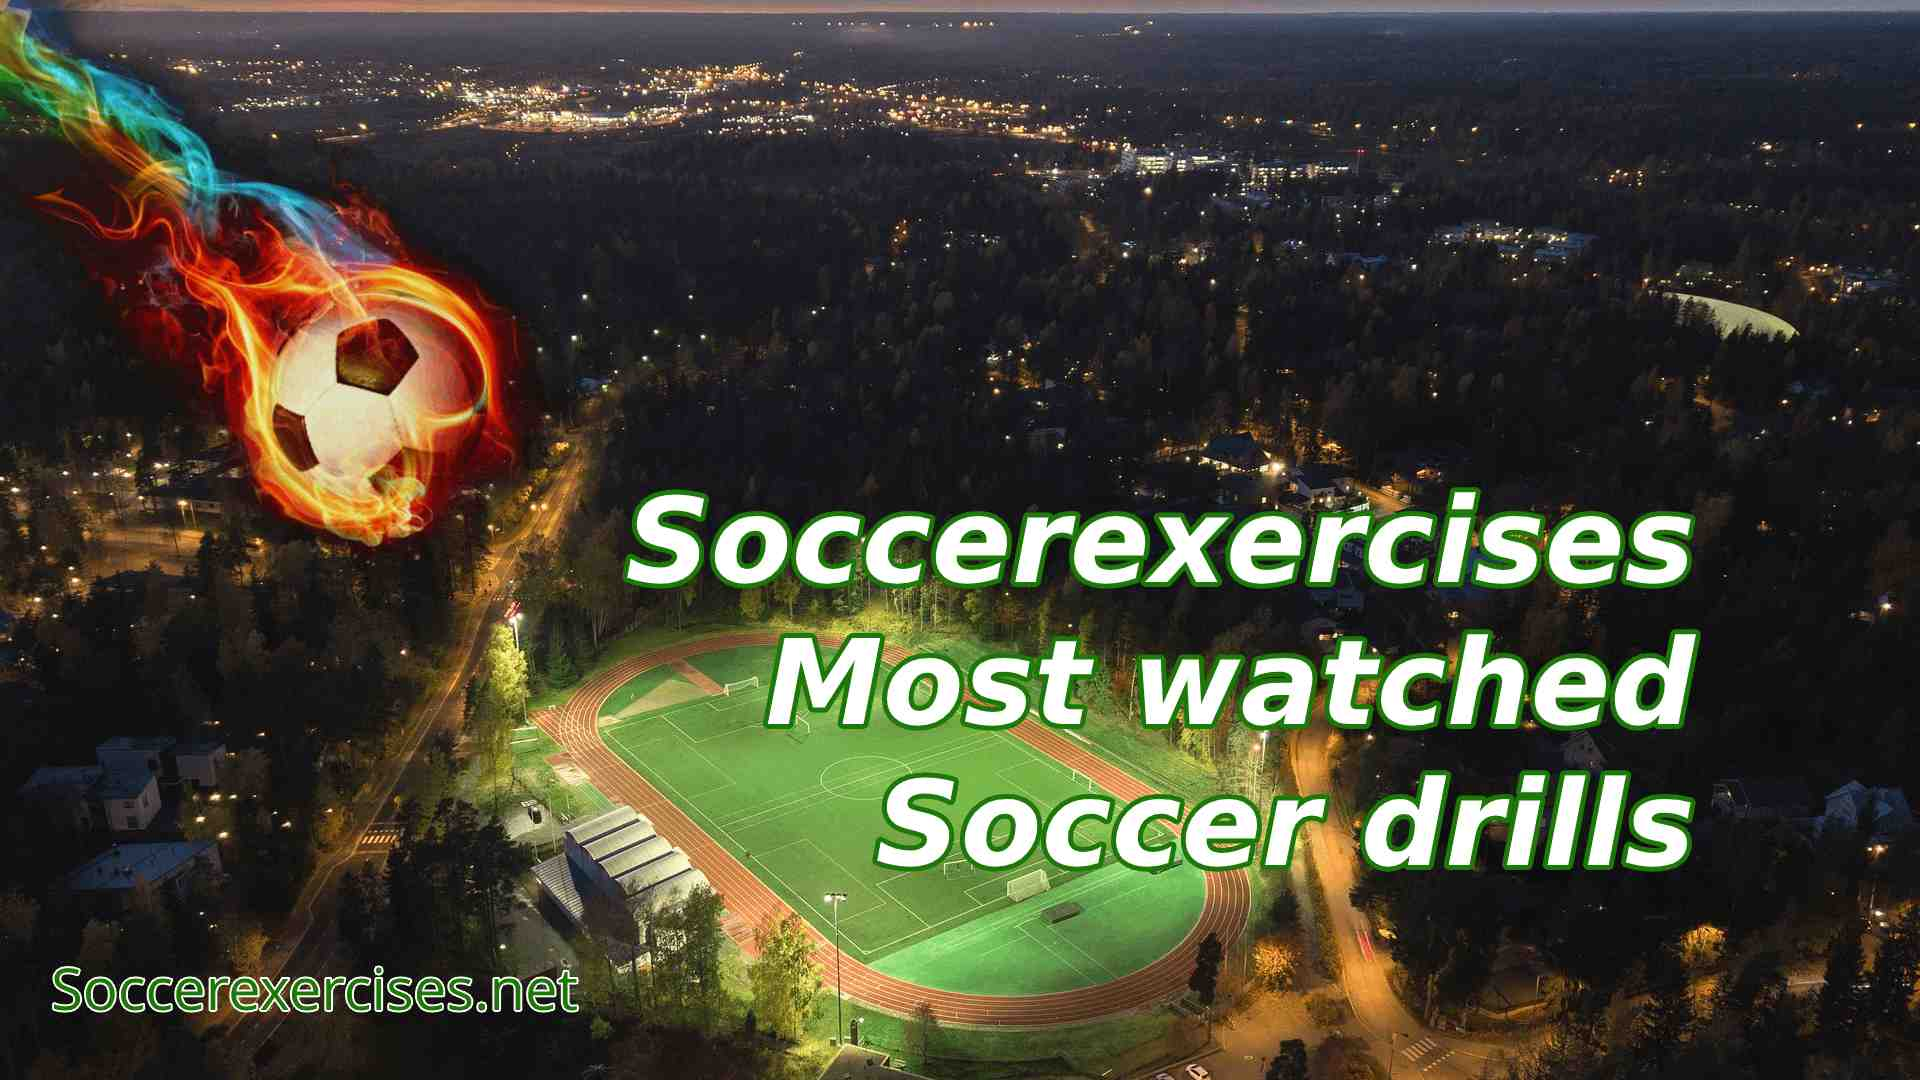 #Extra Most watched soccer drills